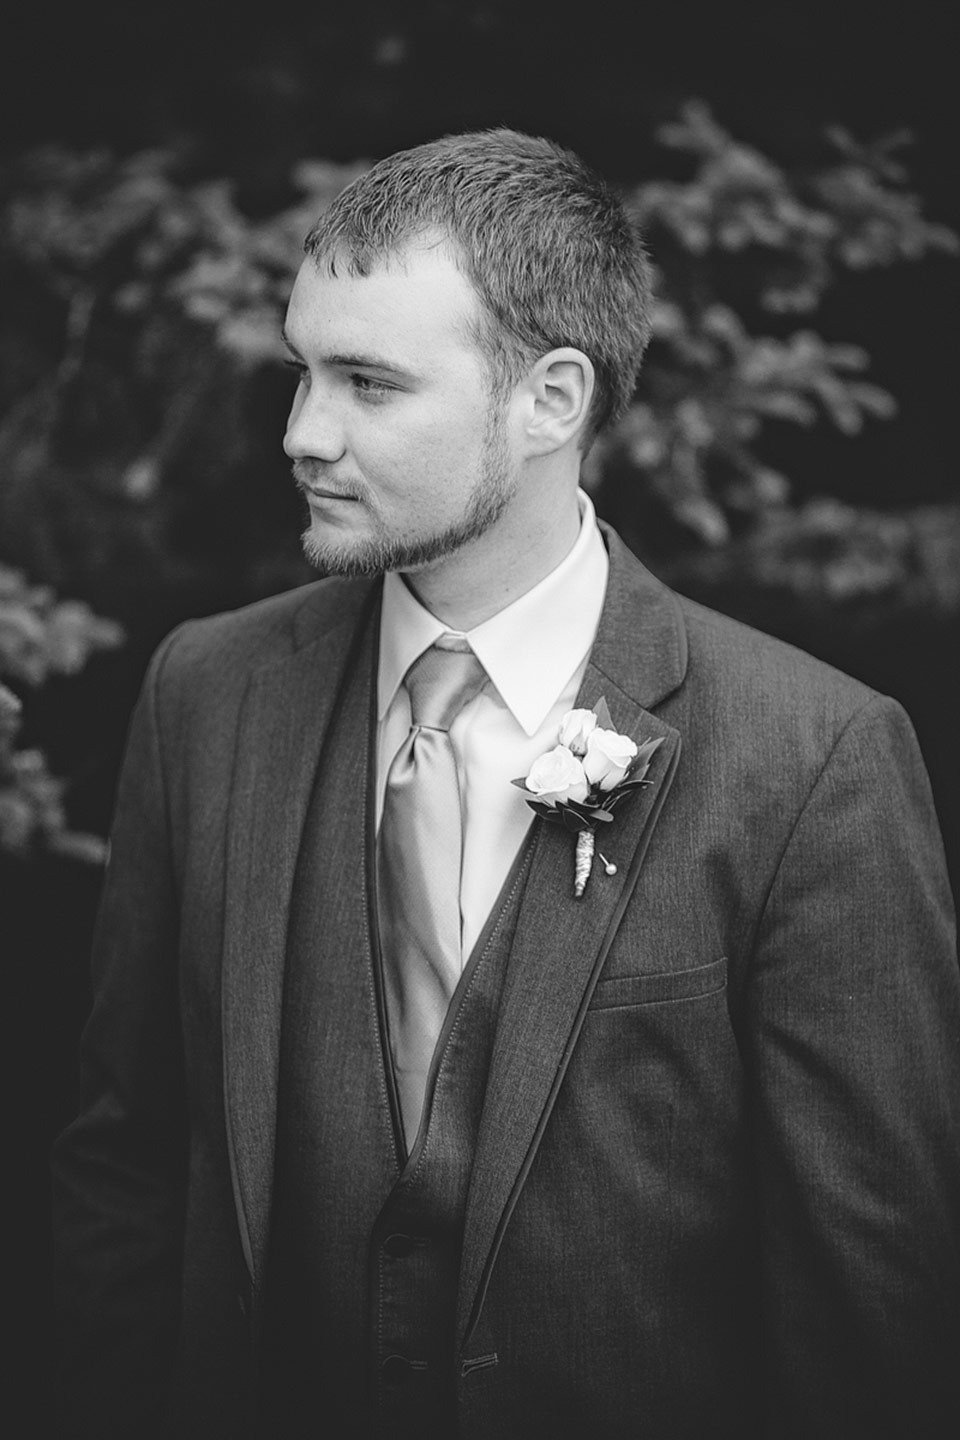 wisconsin-wedding-photographer-005